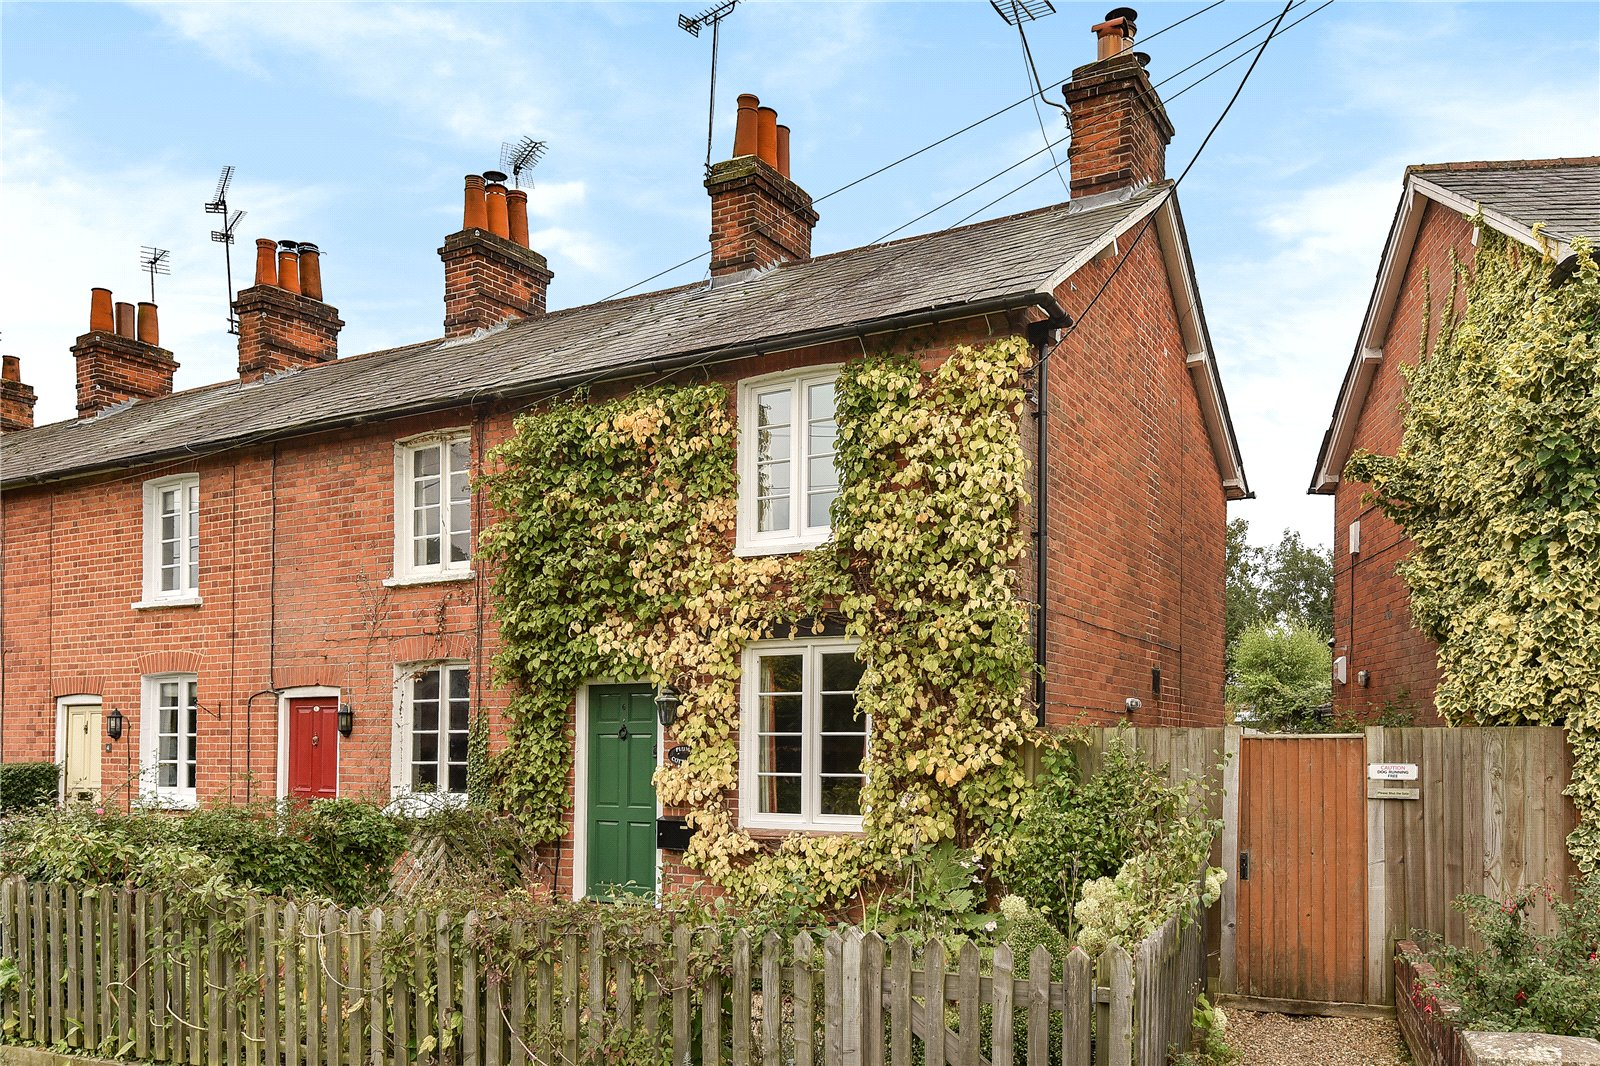 3 Bedrooms End Of Terrace House for sale in Albion Place, Hartley Wintney, Hook, RG27